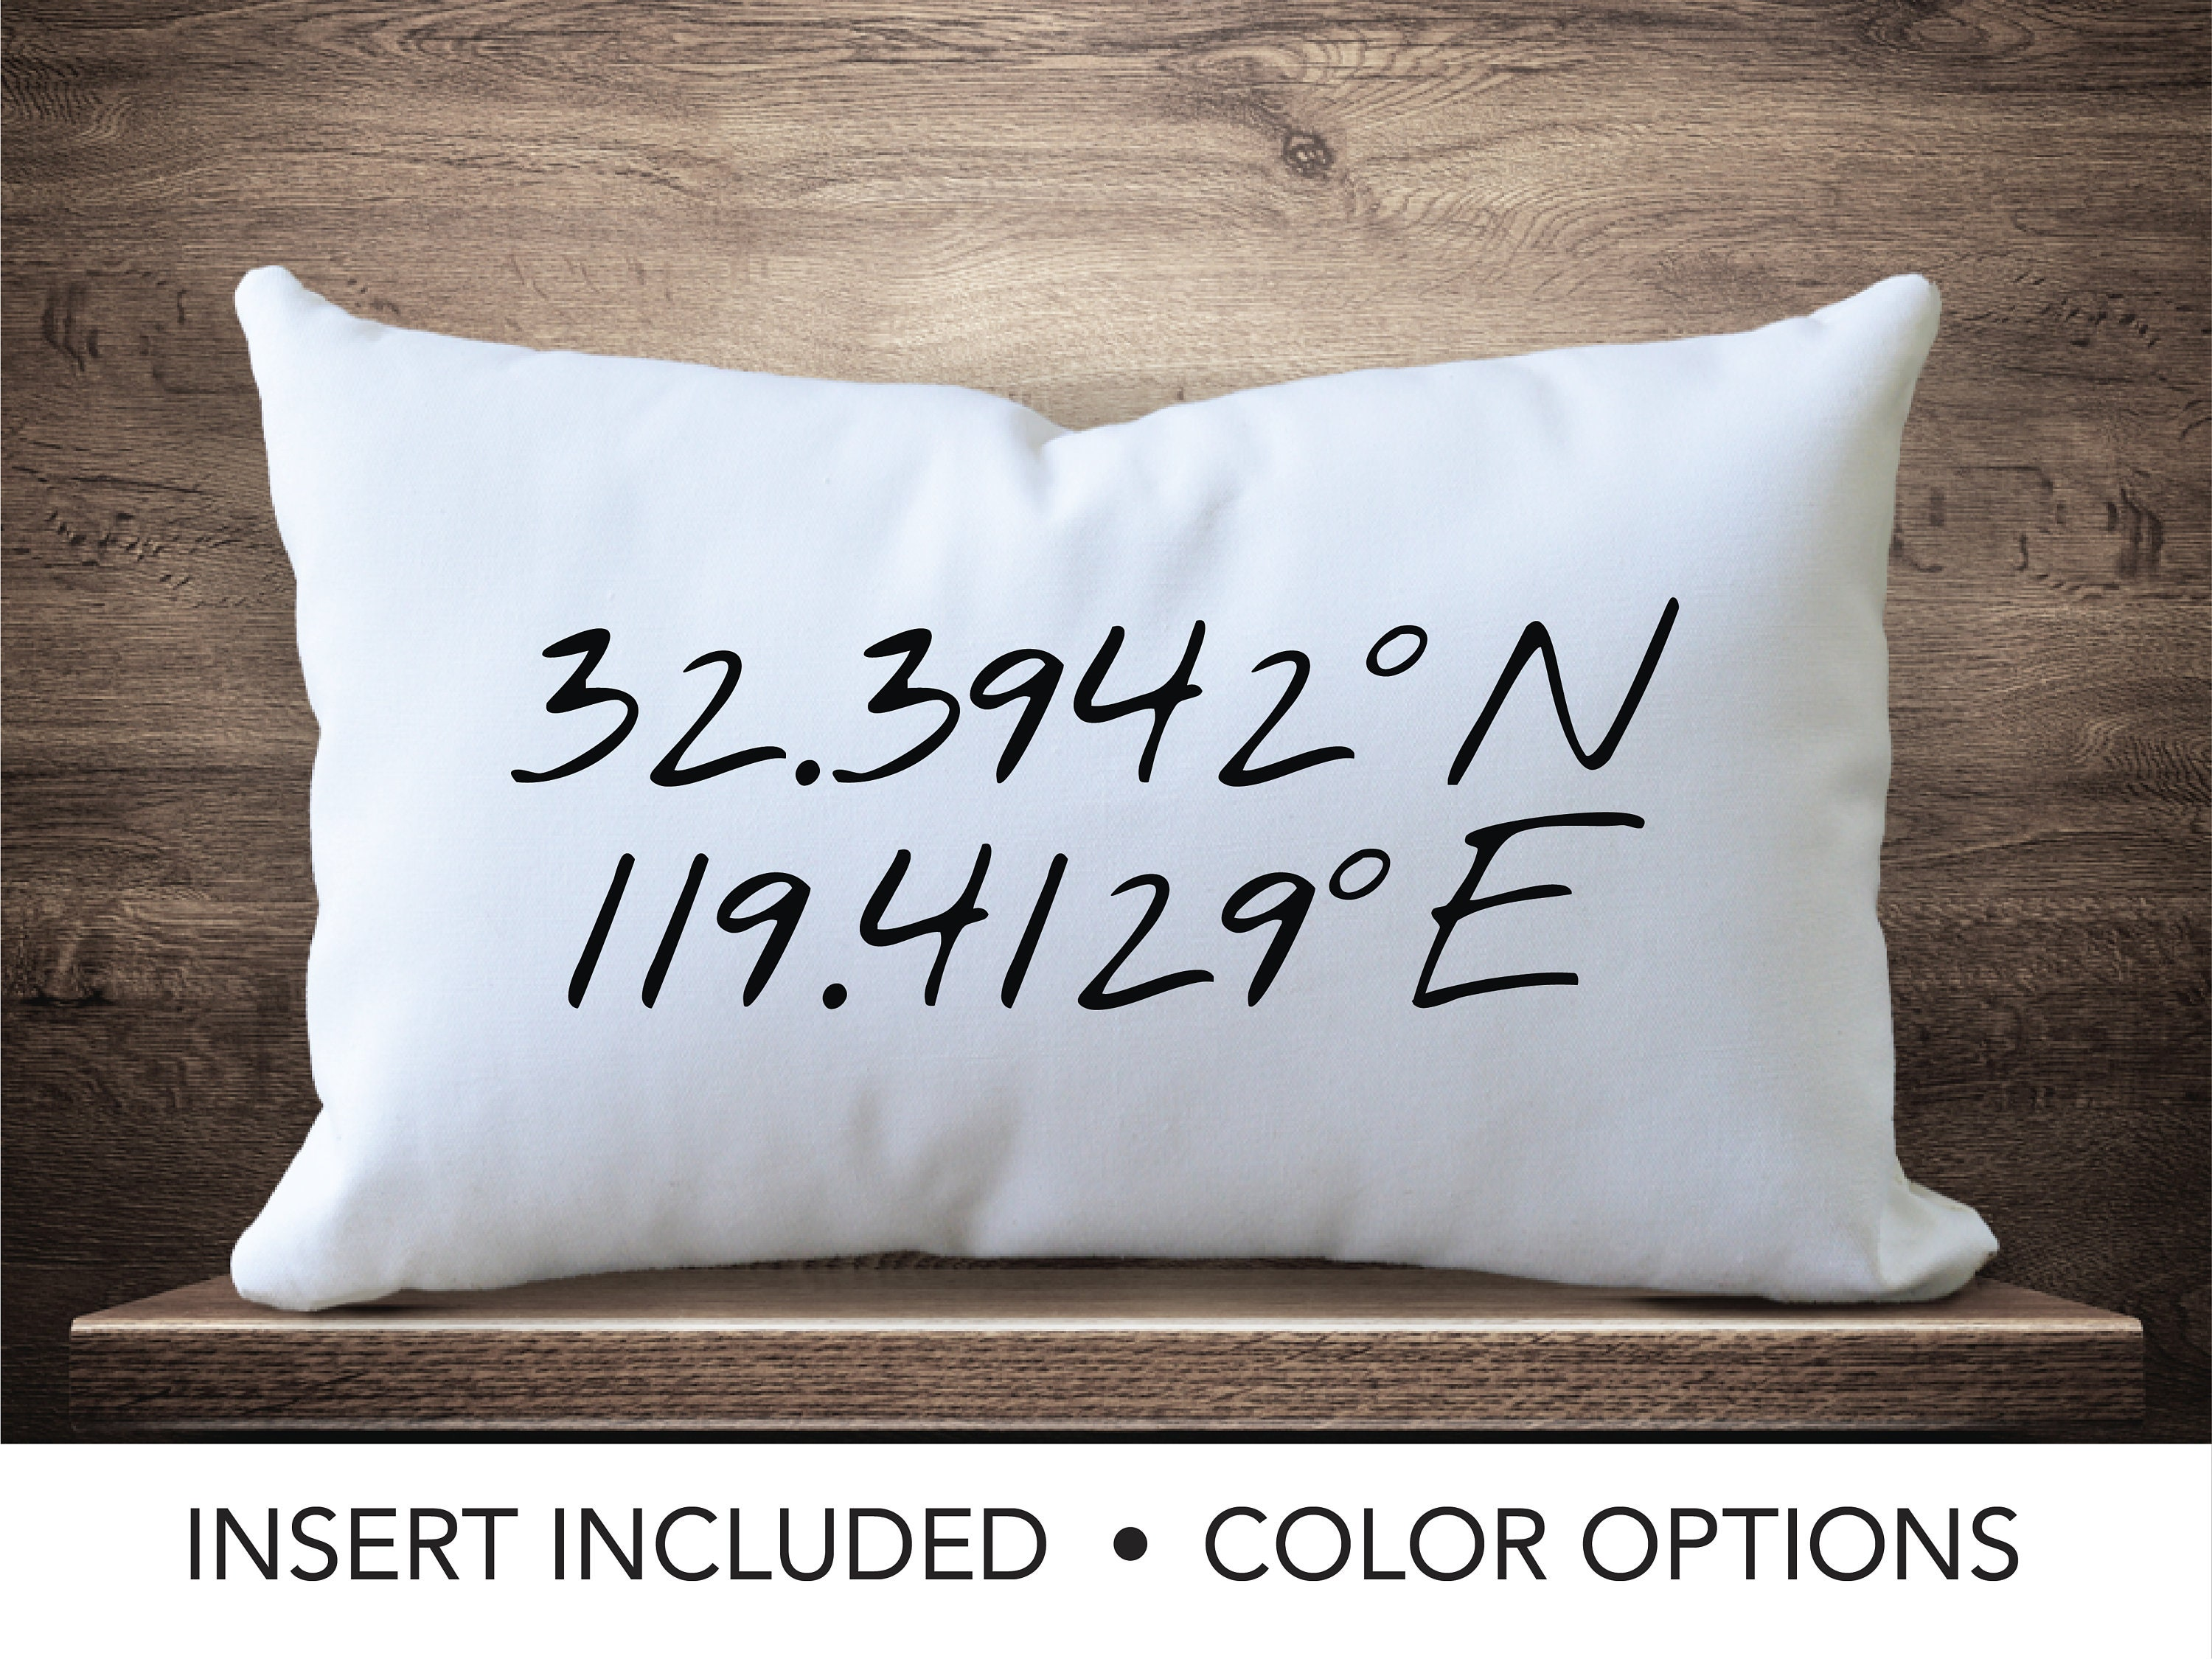 the for needlepoint jonathan tripp nursery adler personalized high pillows pillow low initial vs